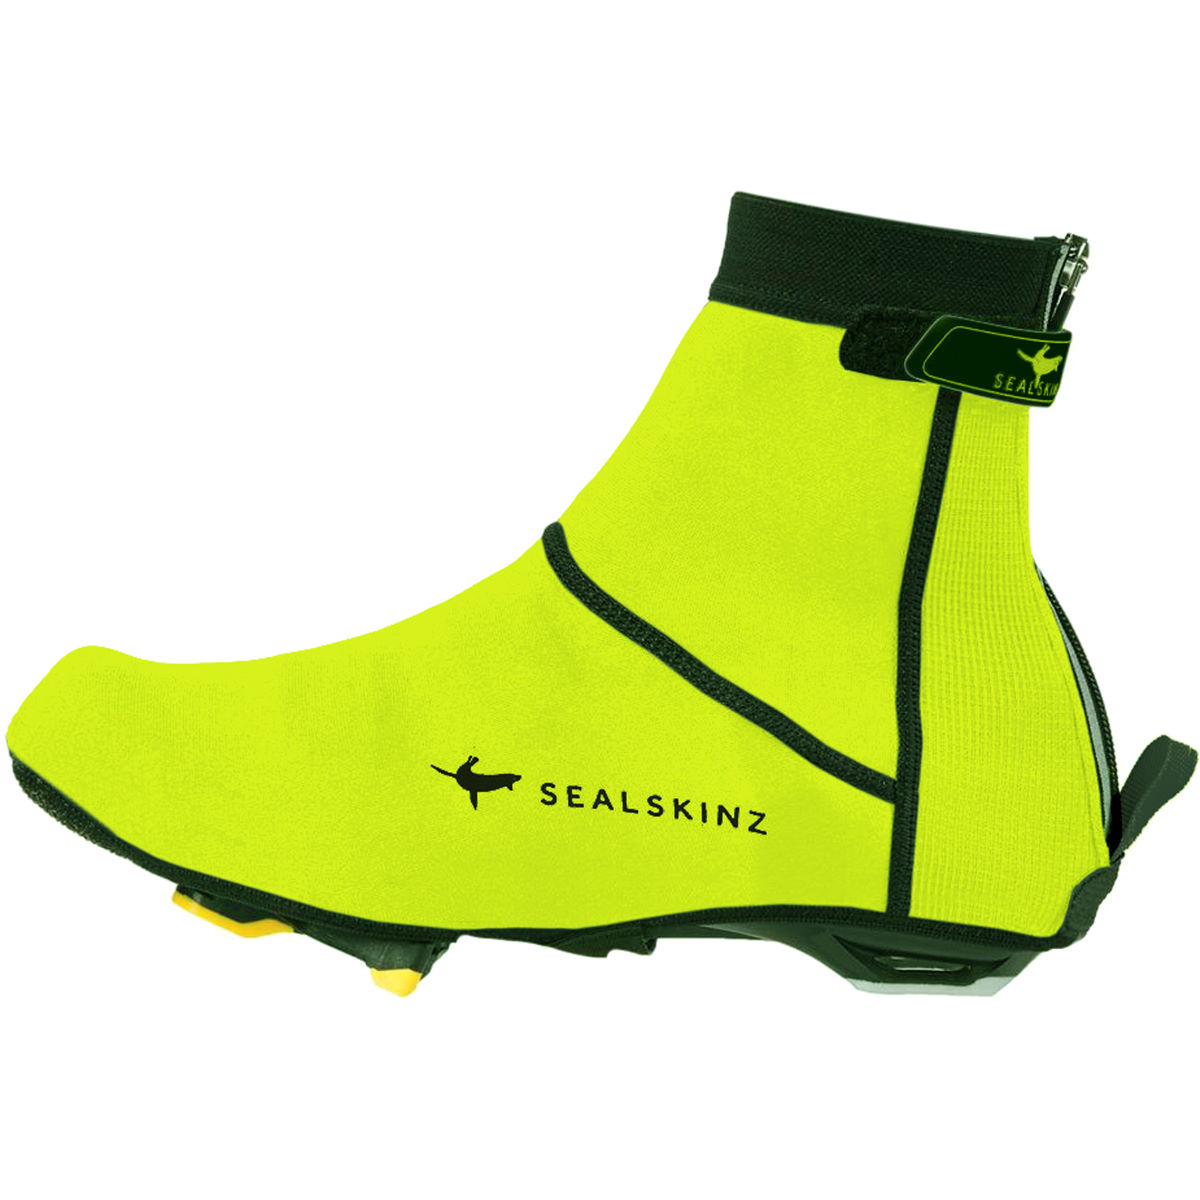 Cubrezapatillas de neopreno de suela abierta SealSkinz High-Vis - Cubrezapatillas